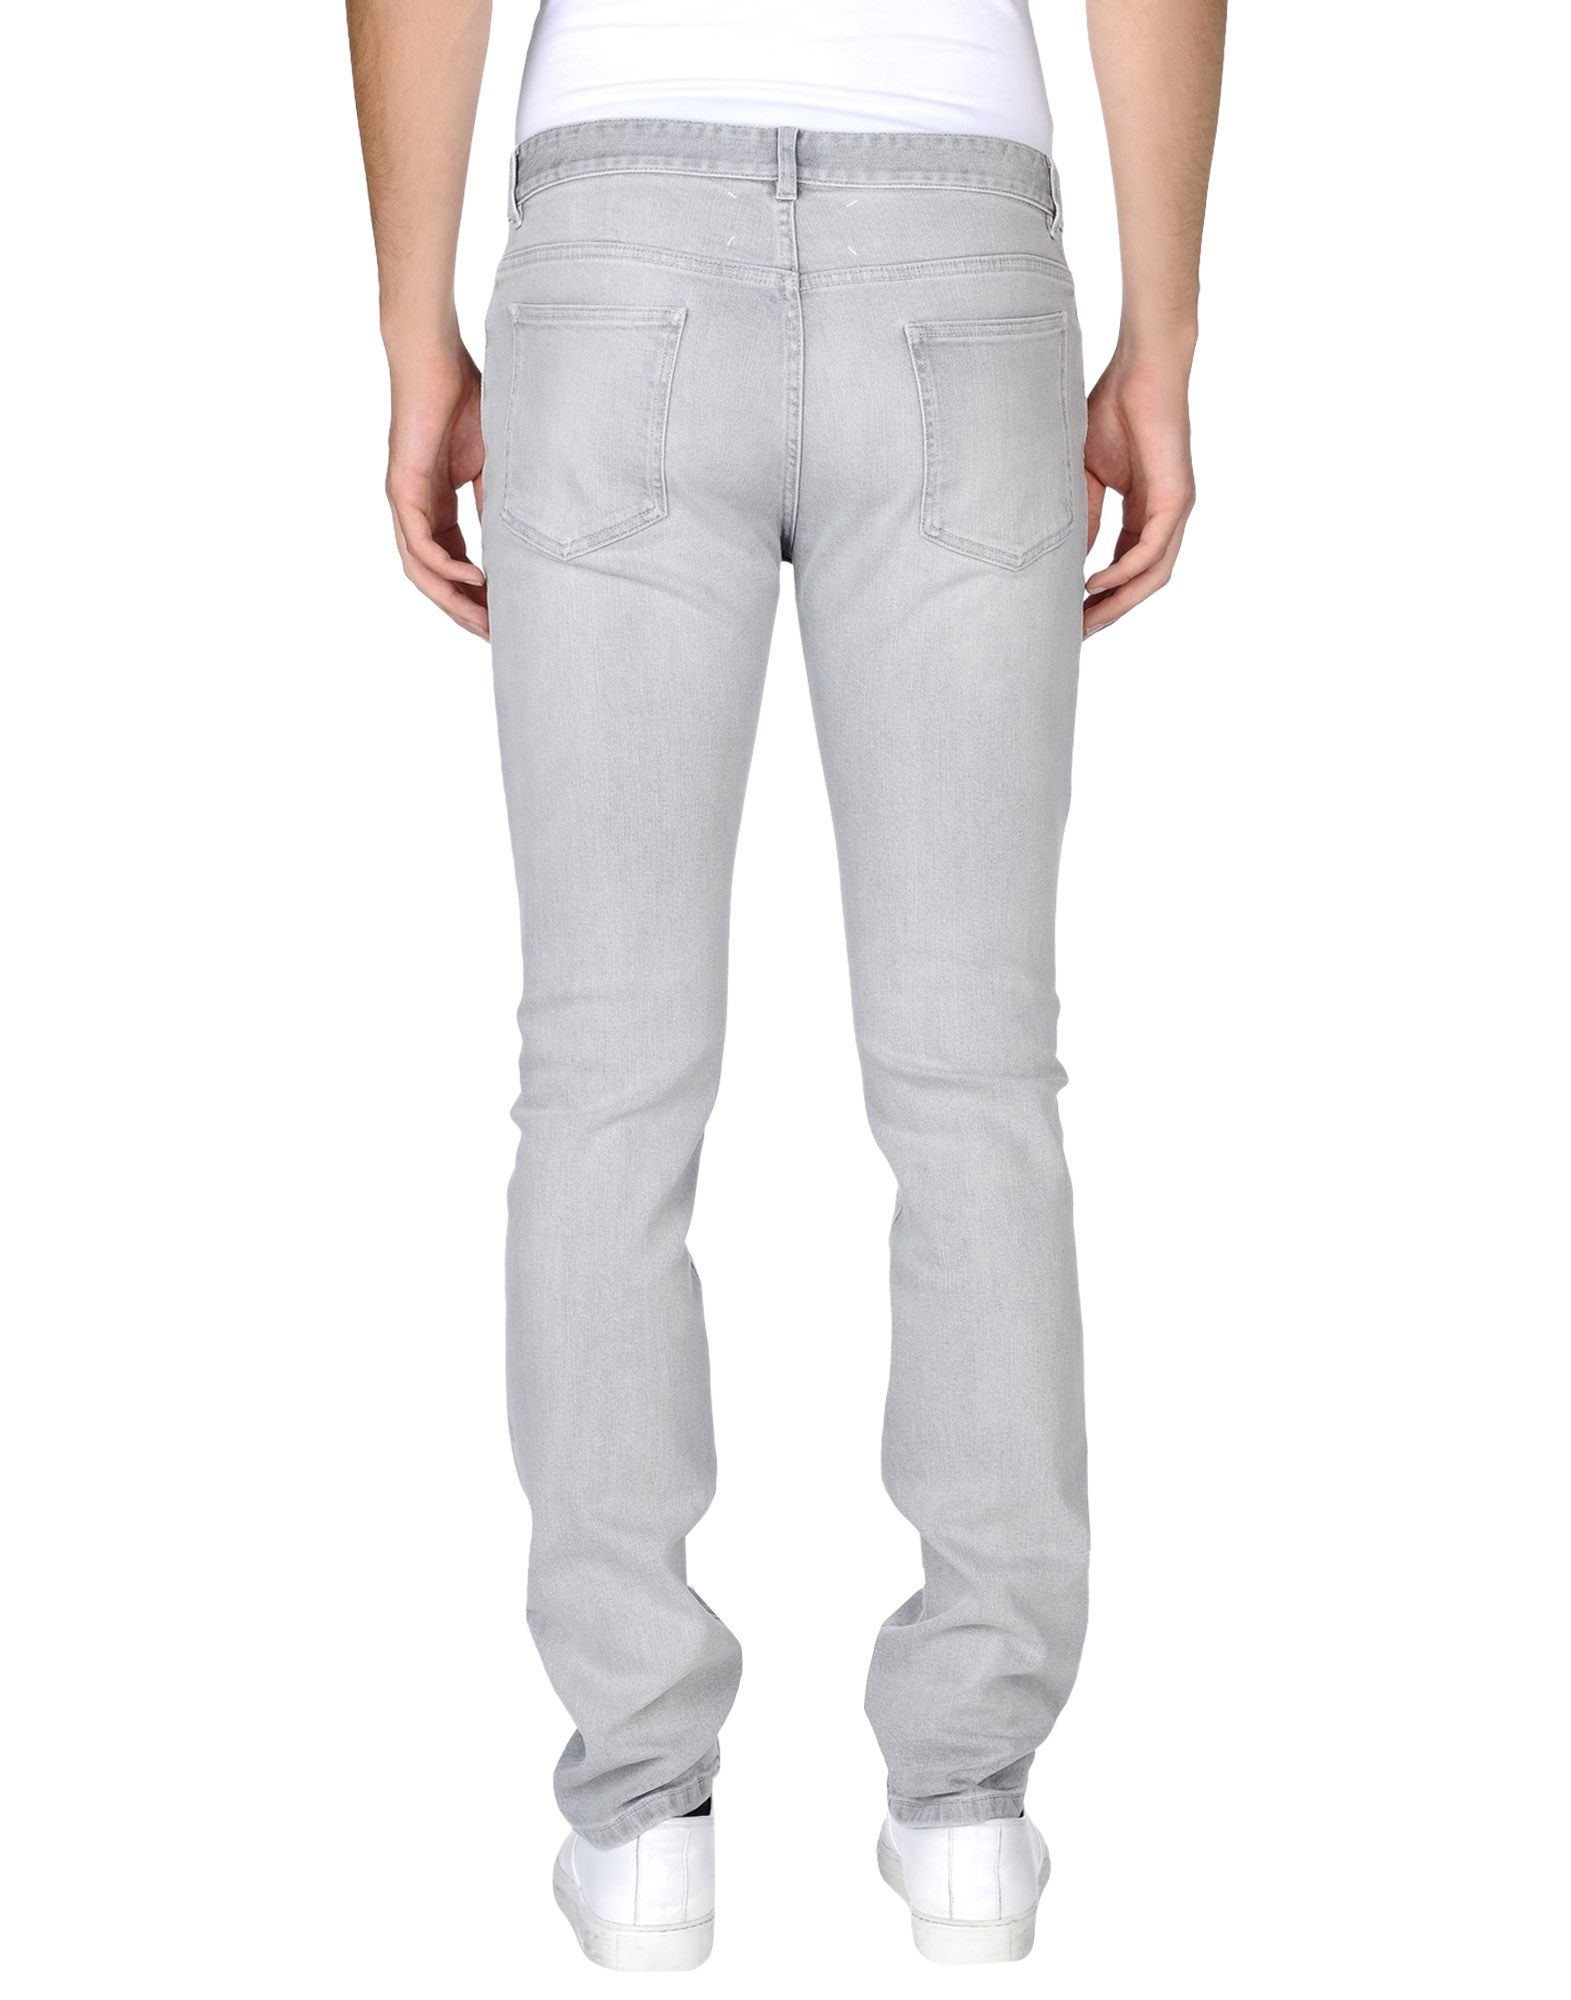 Maison margiela denim pants in gray for men lyst for 10 moulmein rise la maison